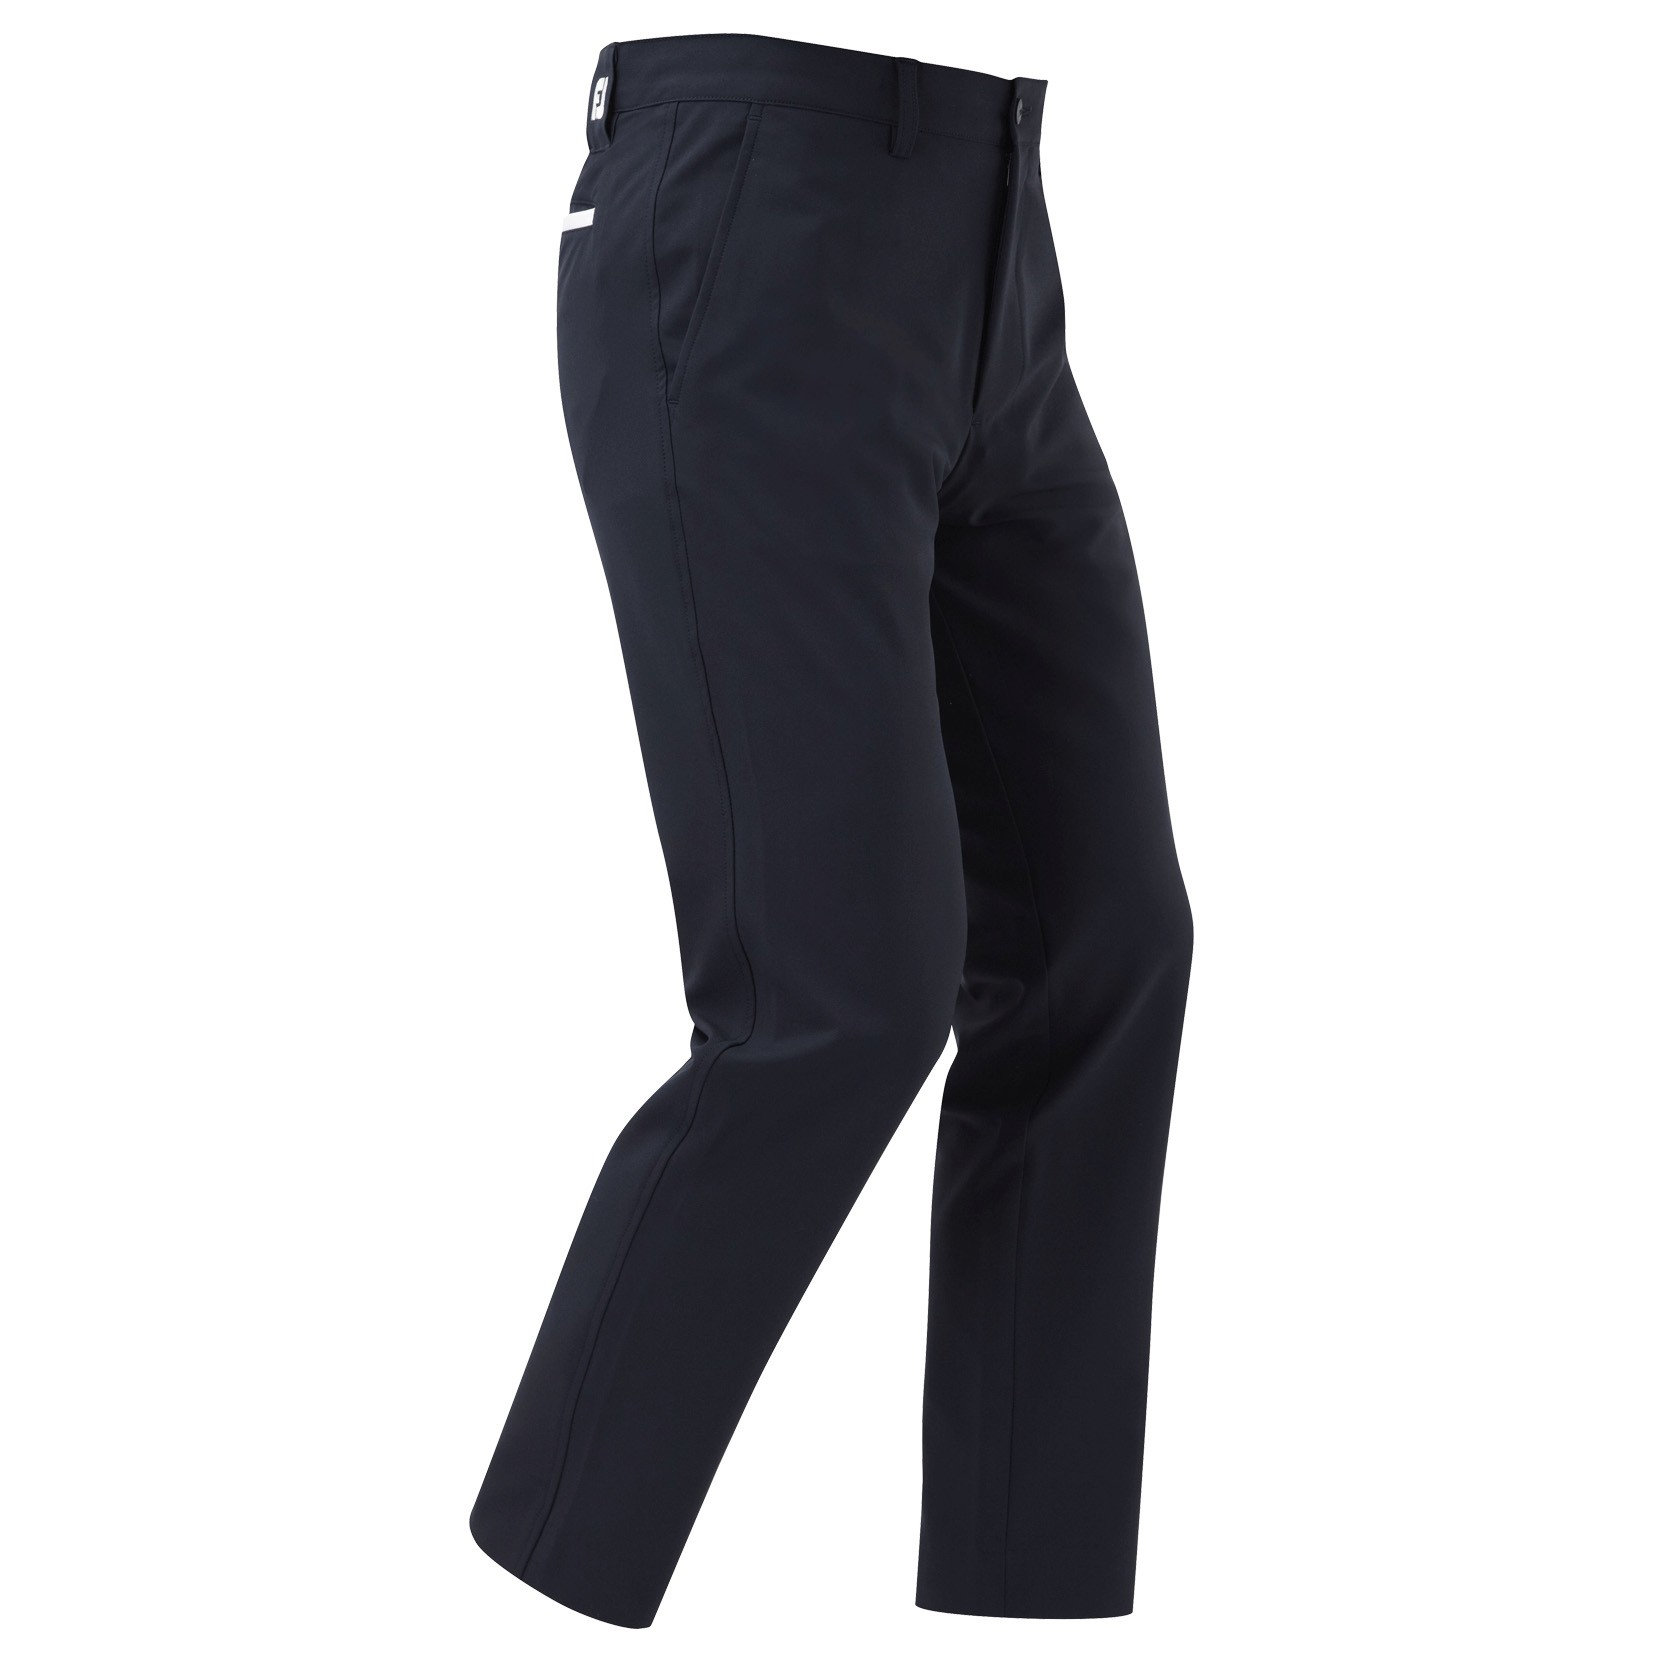 Quần golf nam FootJoy Performance Bedford Trousers